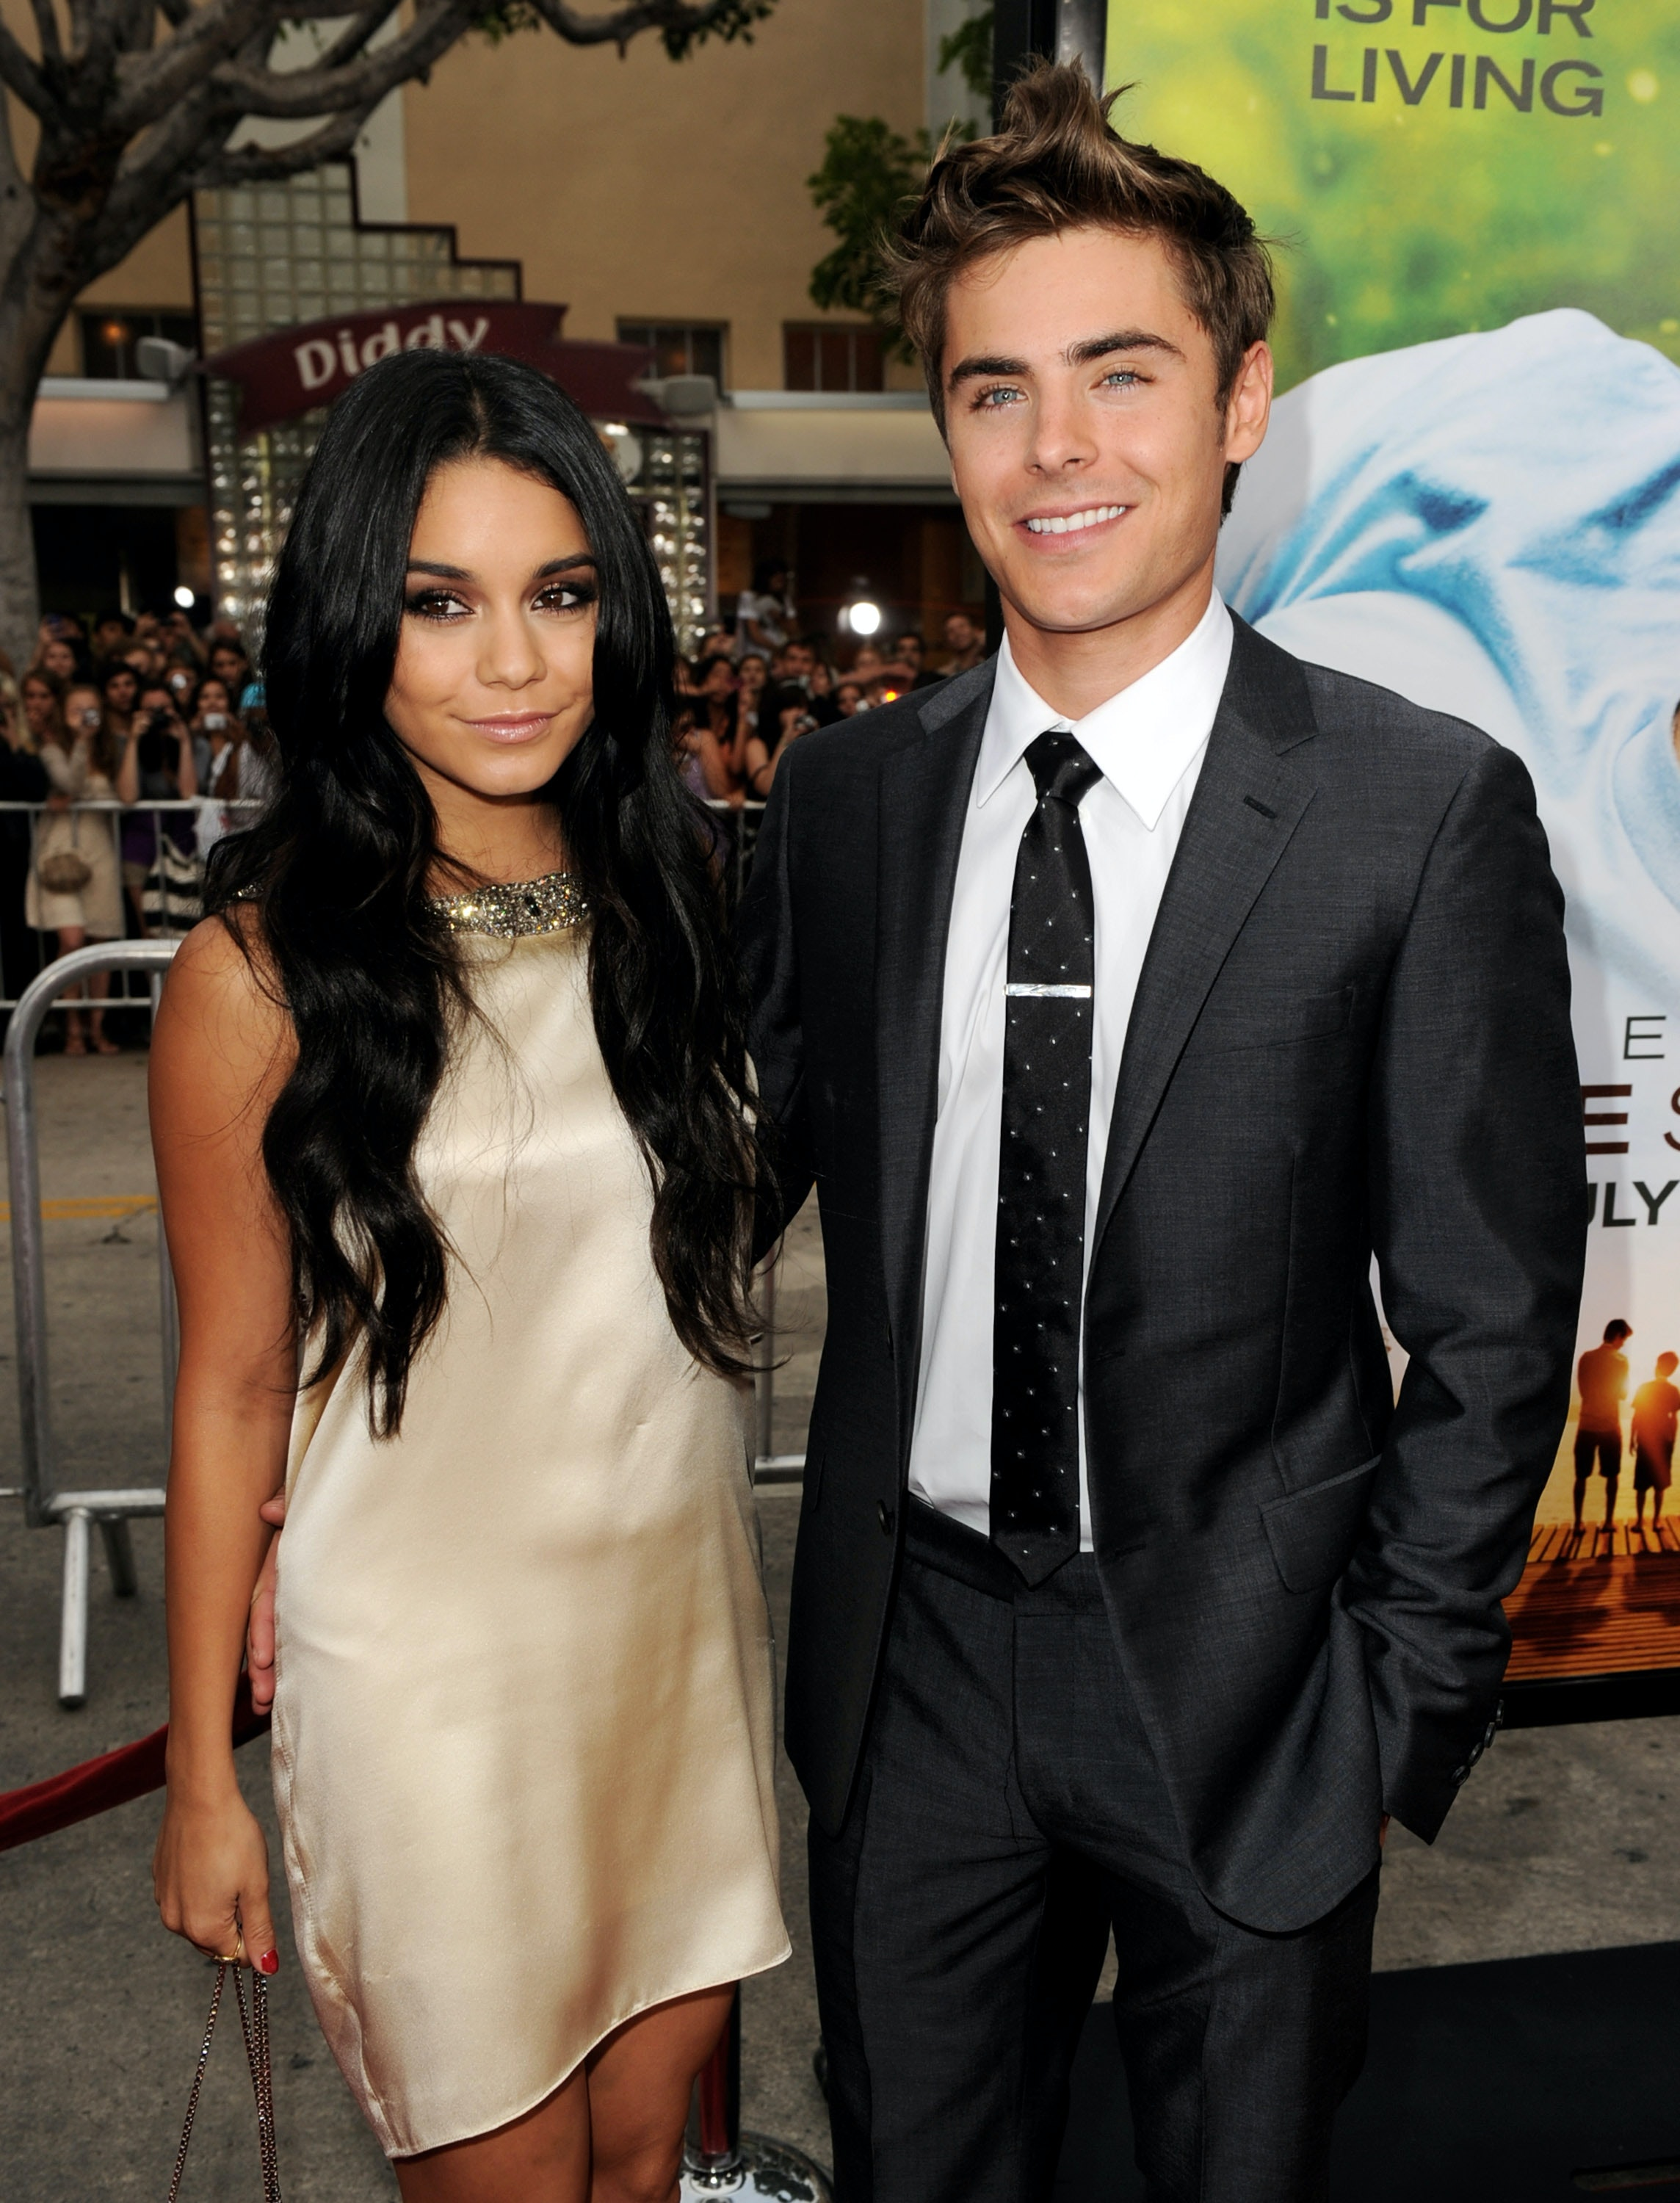 did vanessa hudgens and zac efron date